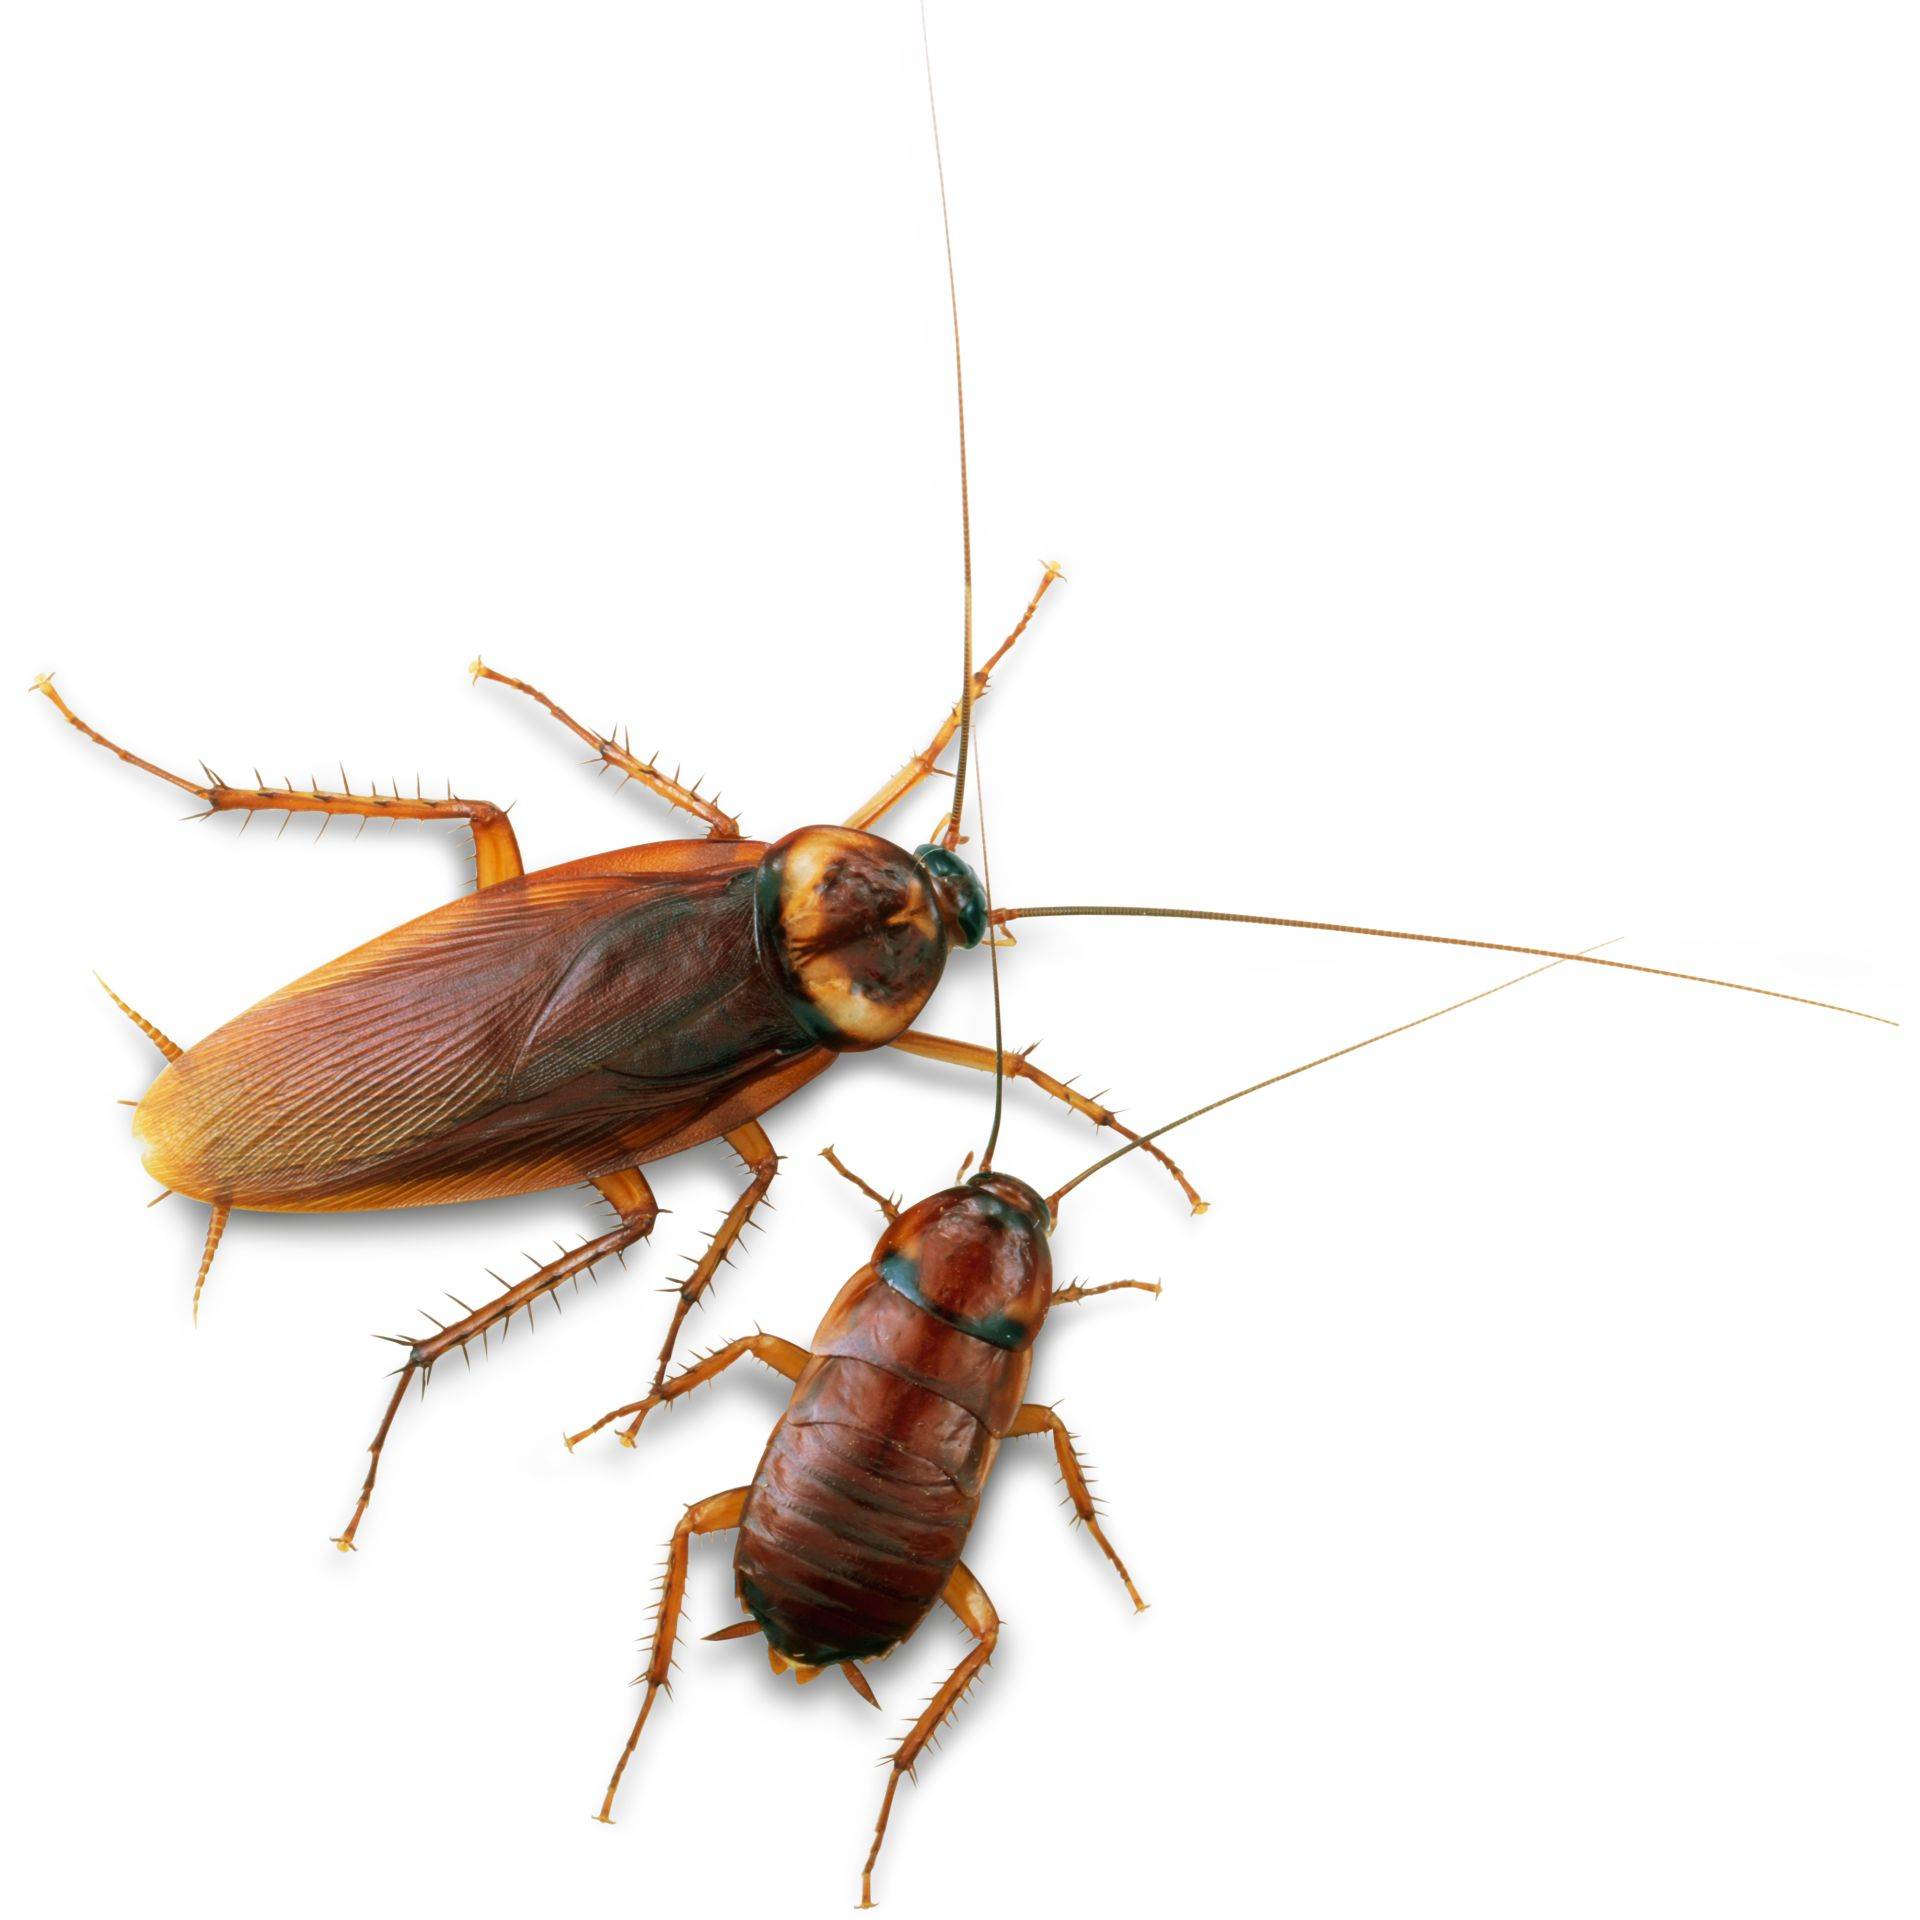 Cockroach Facts | Cockroach Information | DK Find Out